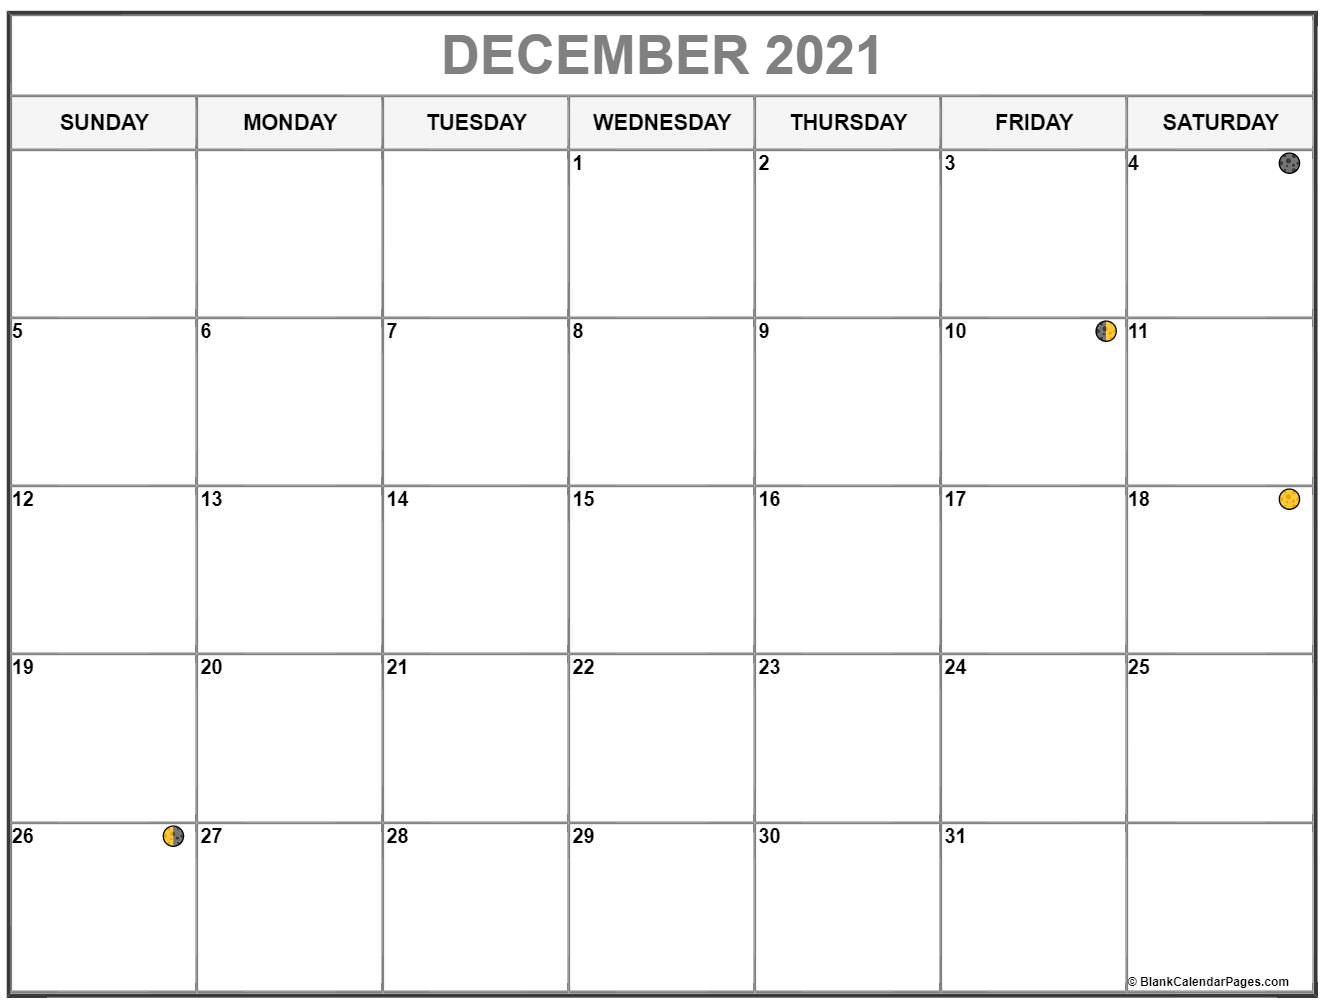 December 2021 lunar calendar. Moon phases with USA holidays